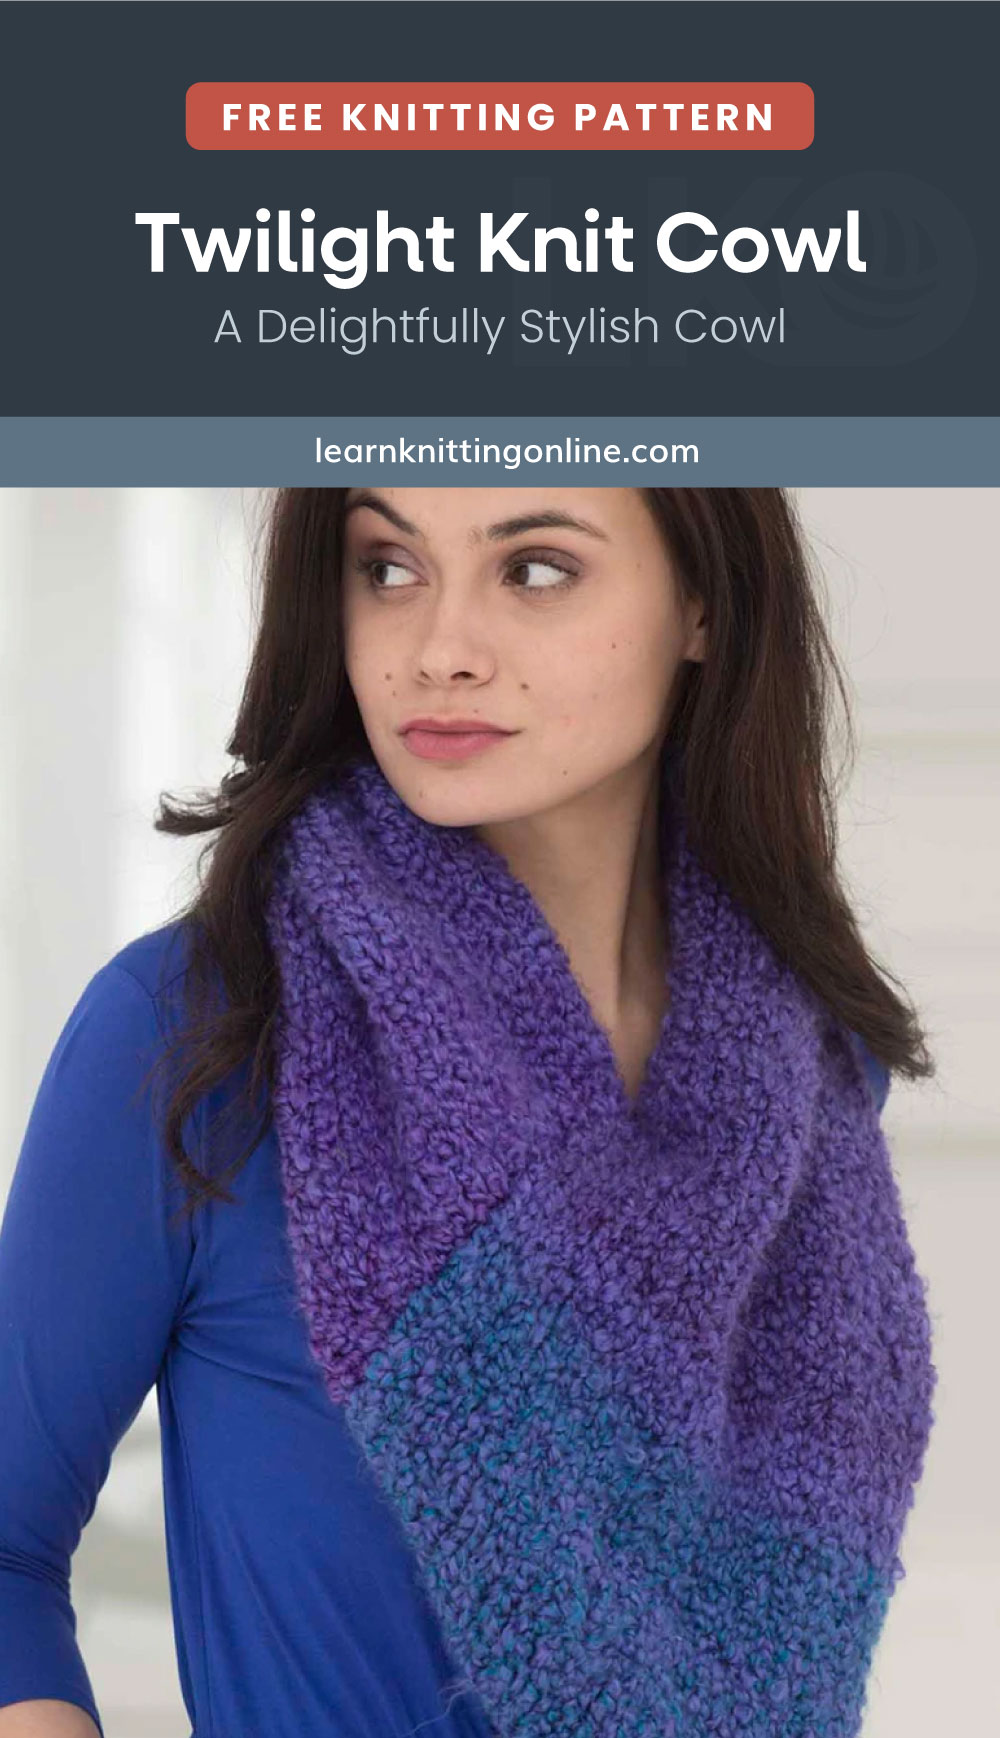 """Text area which says """"Free Knitting Pattern: Twilight Knit Cowl - A Delightfully Stylish Cowl, learnknittingonline.com"""" followed by a woman with a raised eyebrow wearing a chunky knitted cowl"""